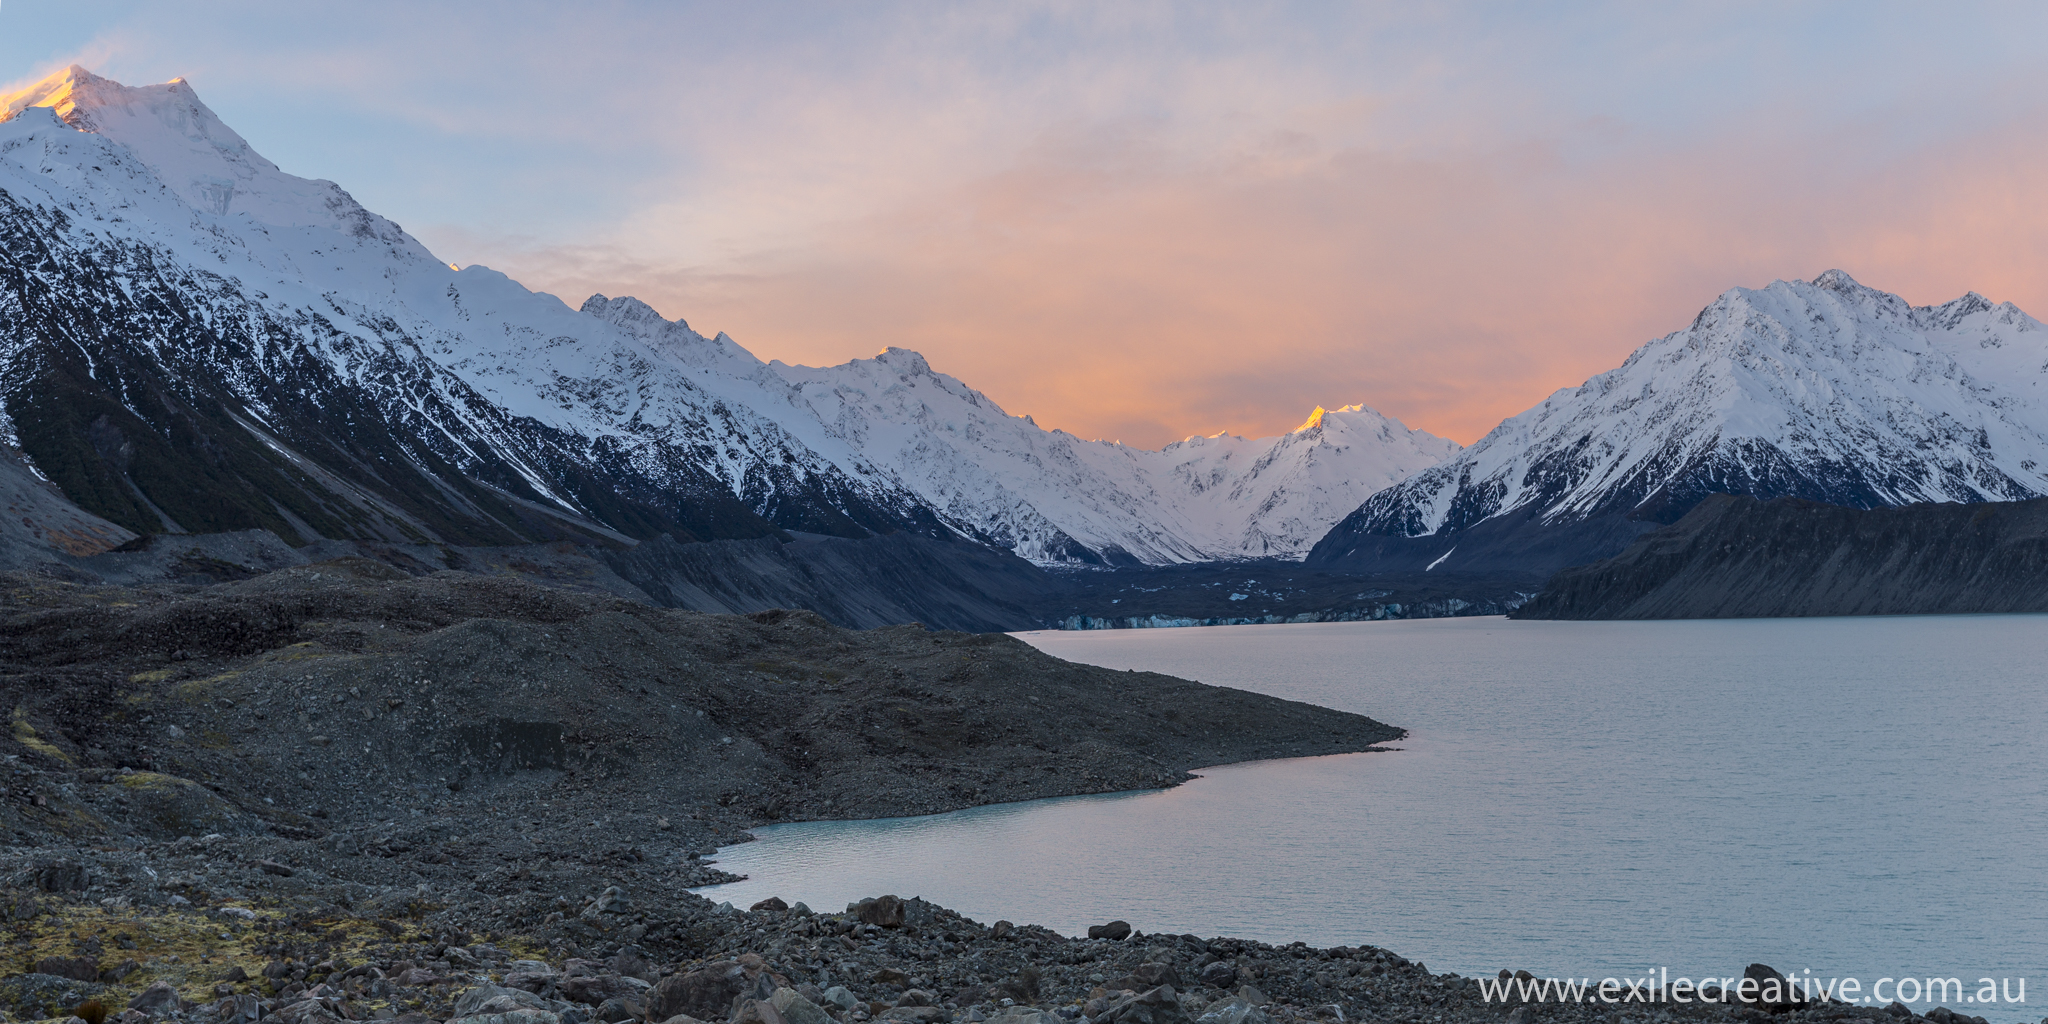 Mt Cook Aoraki National Park  Canon 5Dmiii, 16-35L III IS @ 35mm, ISO200, f/5.6, 1/60s